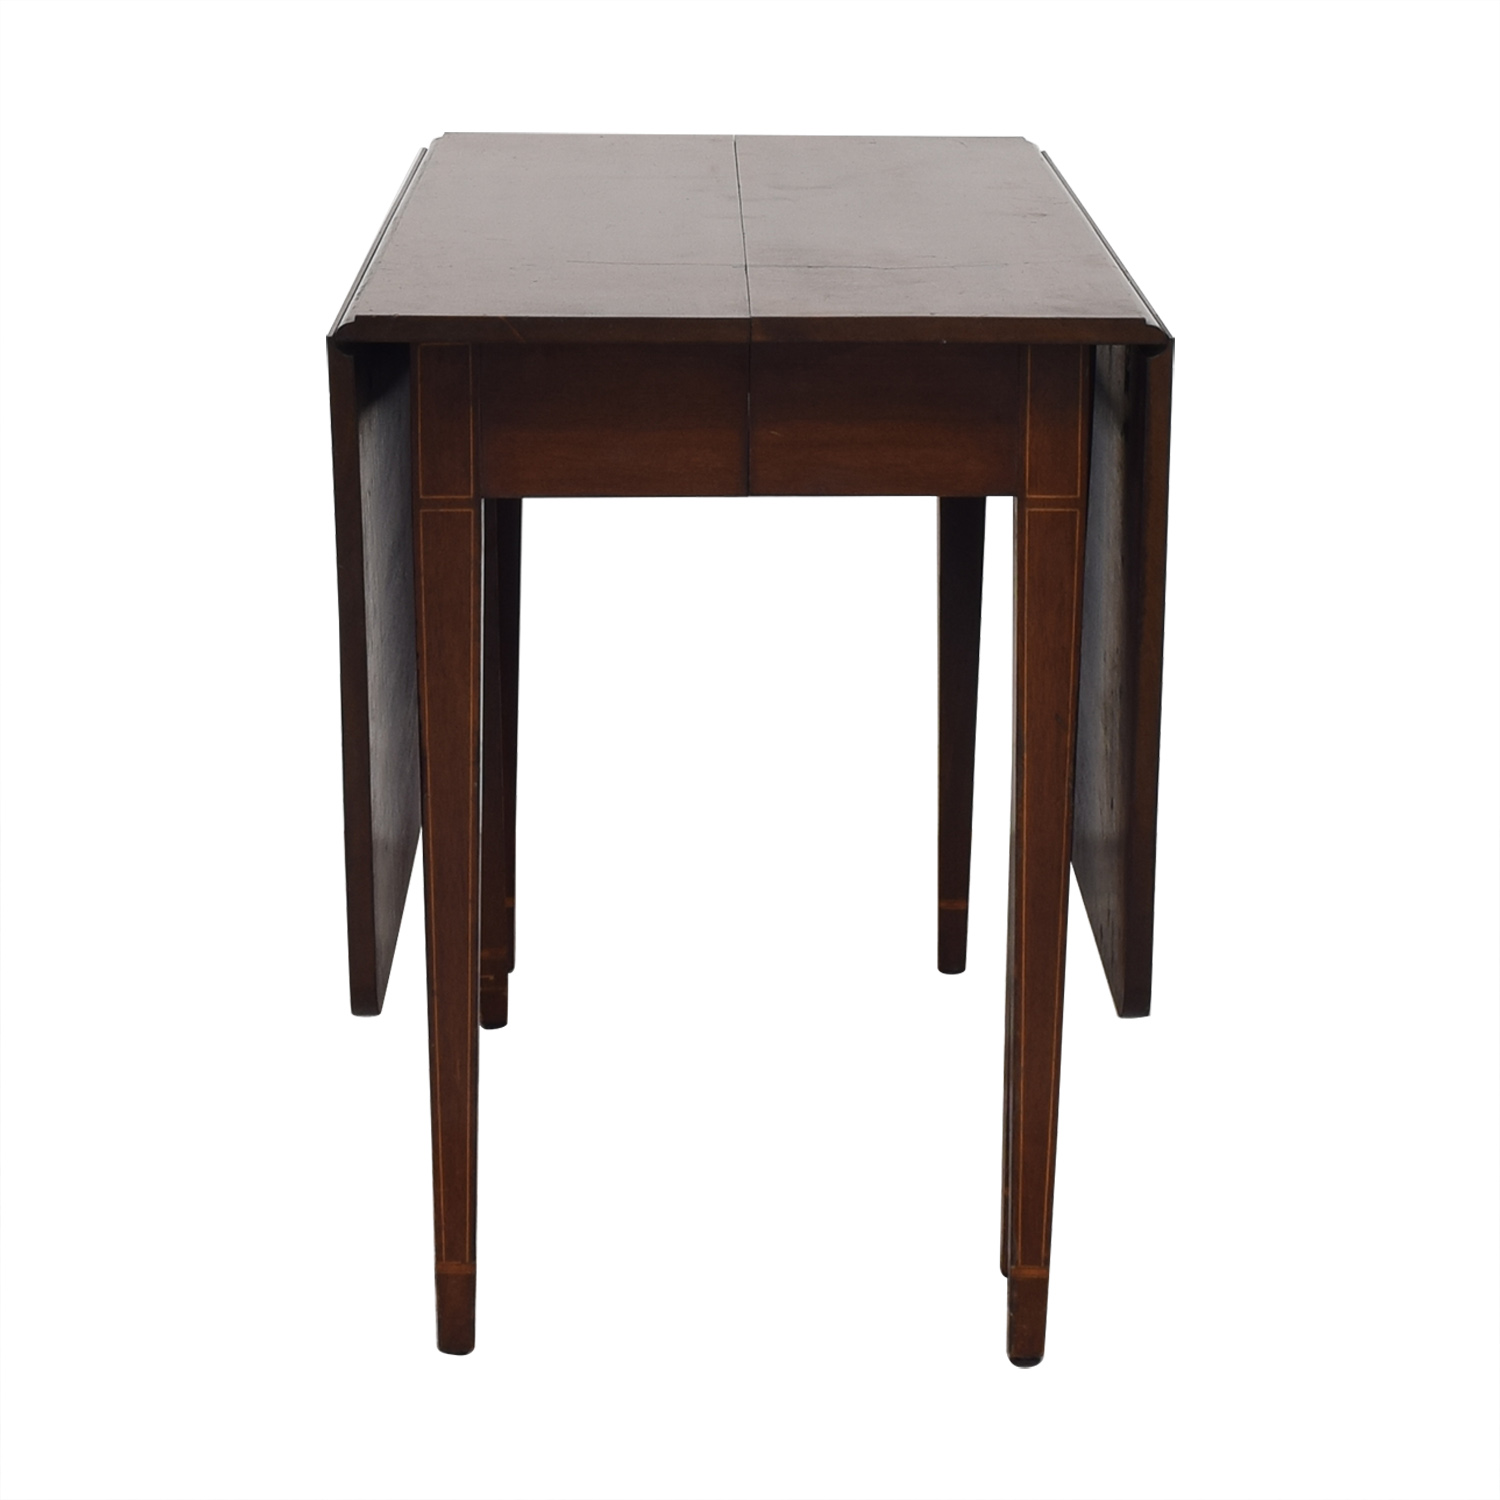 buy  Vintage Drop Leaf Table online